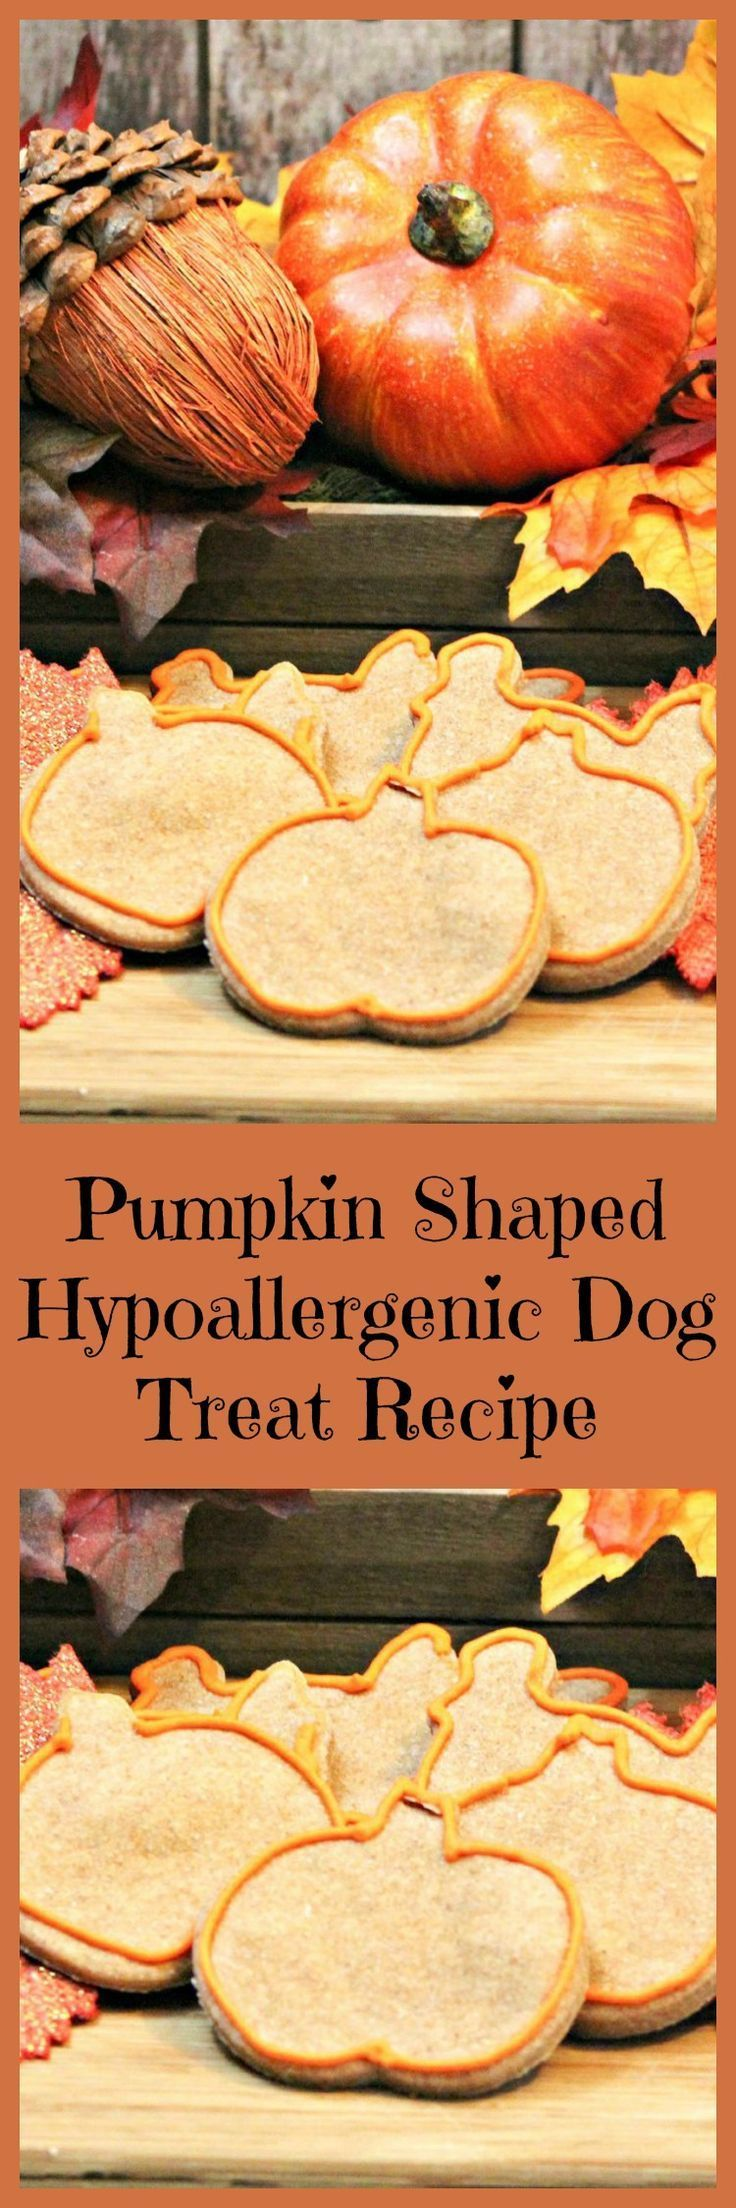 1000 Ideas About Hypoallergenic Dog Treats On Pinterest